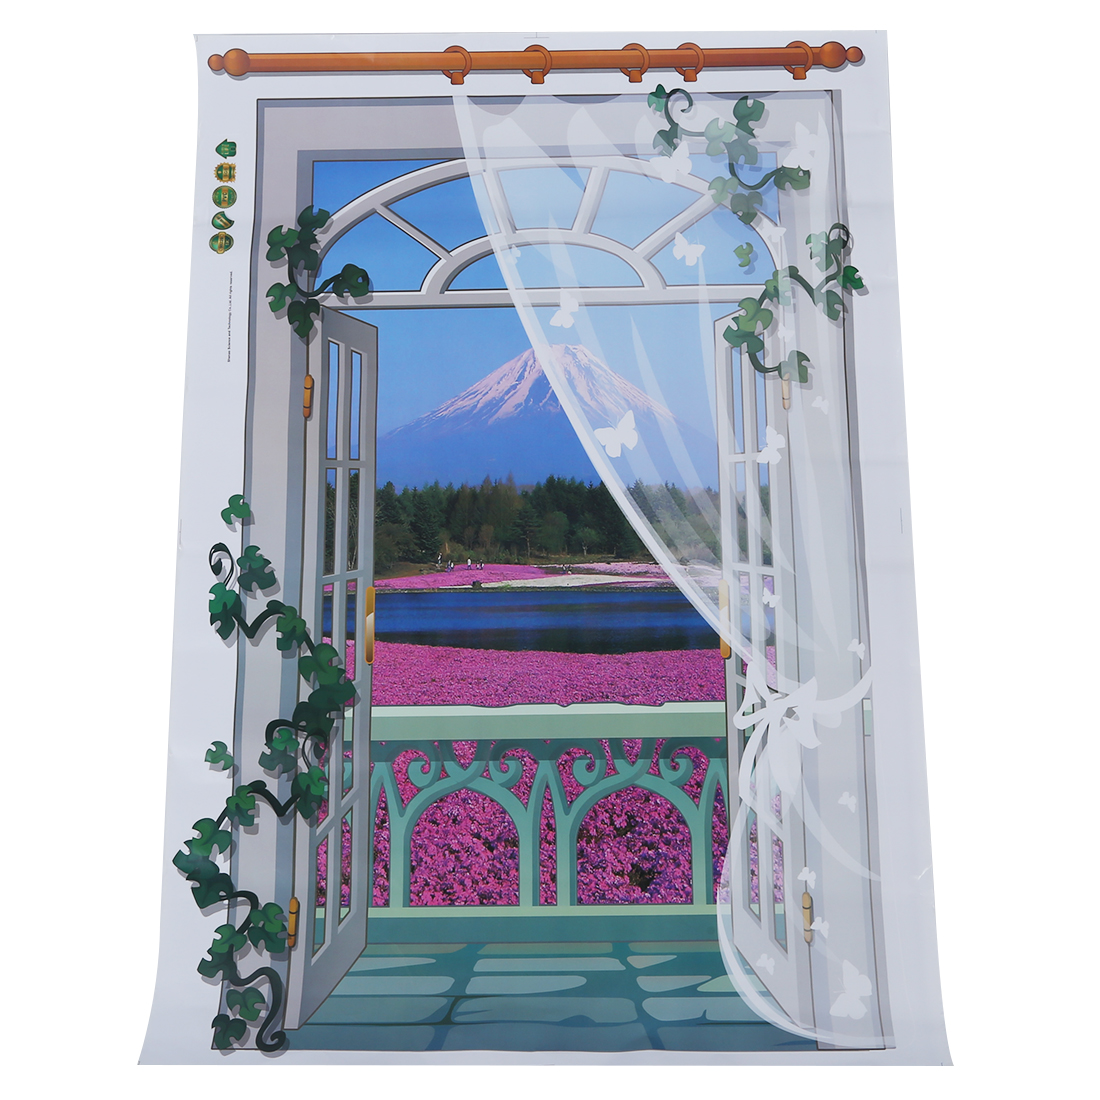 removable 3d window scenery wall sticker home decor decals mural decal exotic beach view vertical - Home Decor Screens